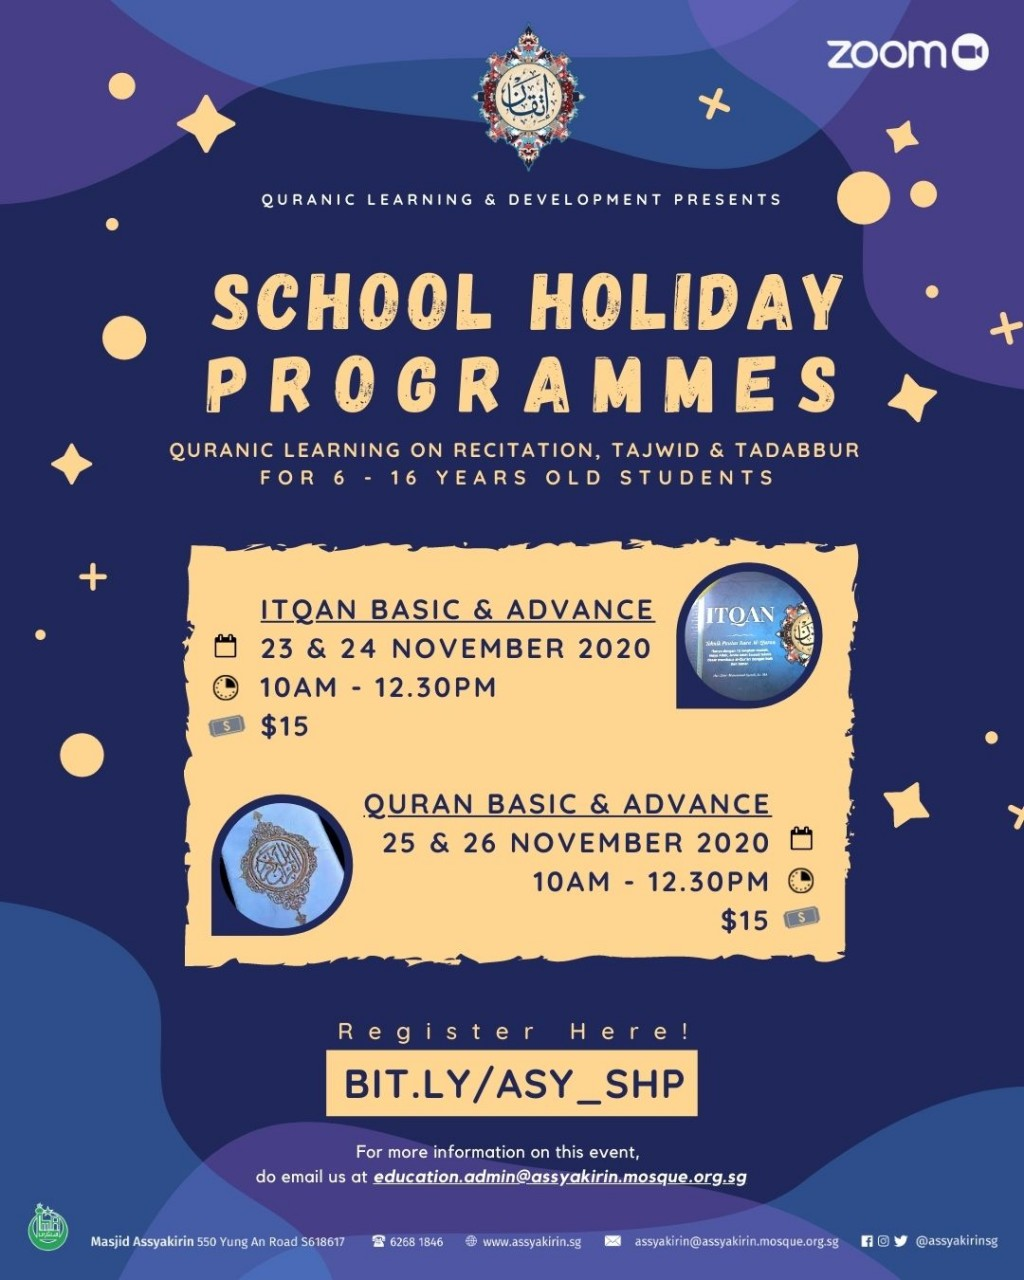 QLD SCHOOL HOLIDAY PROGRAMME